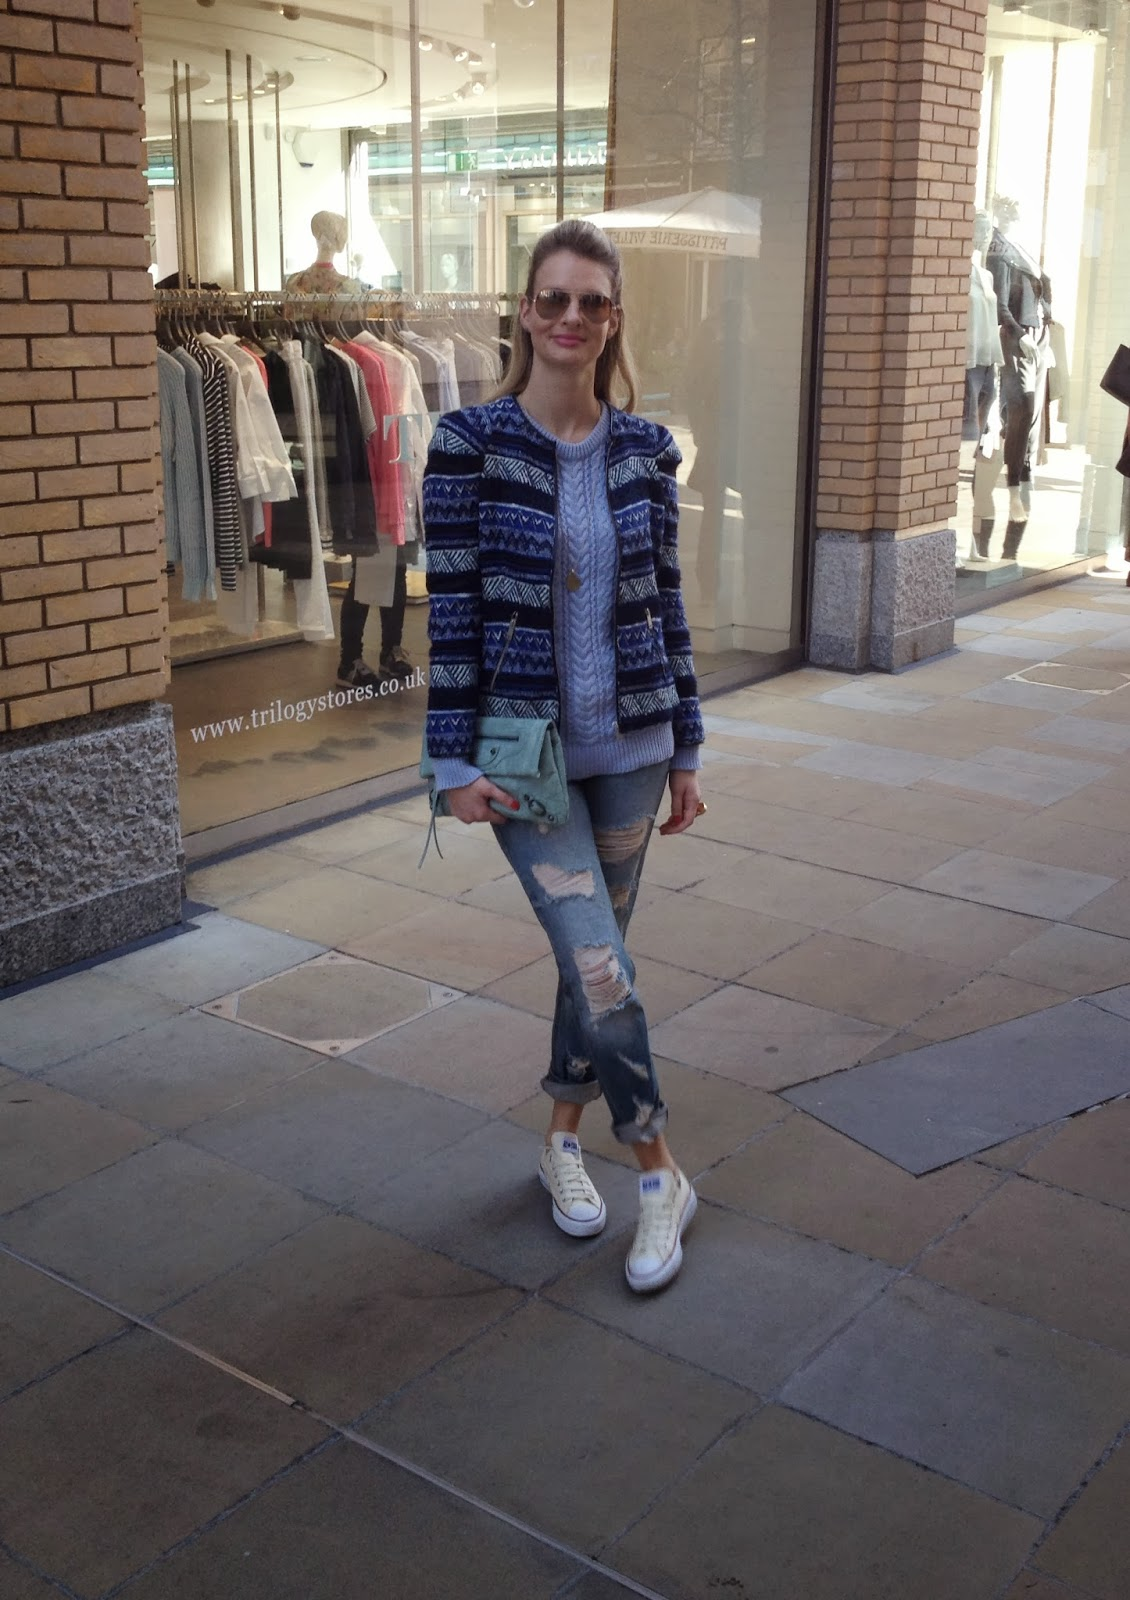 minusey, minusey clutch, mint green clutch, converse, white converse, ripped jeans, destroyed denim, baby blue jumper, blue jacket, baby blue jumper, ray bans, fashion blogger, street style, zara, look book, zara look book